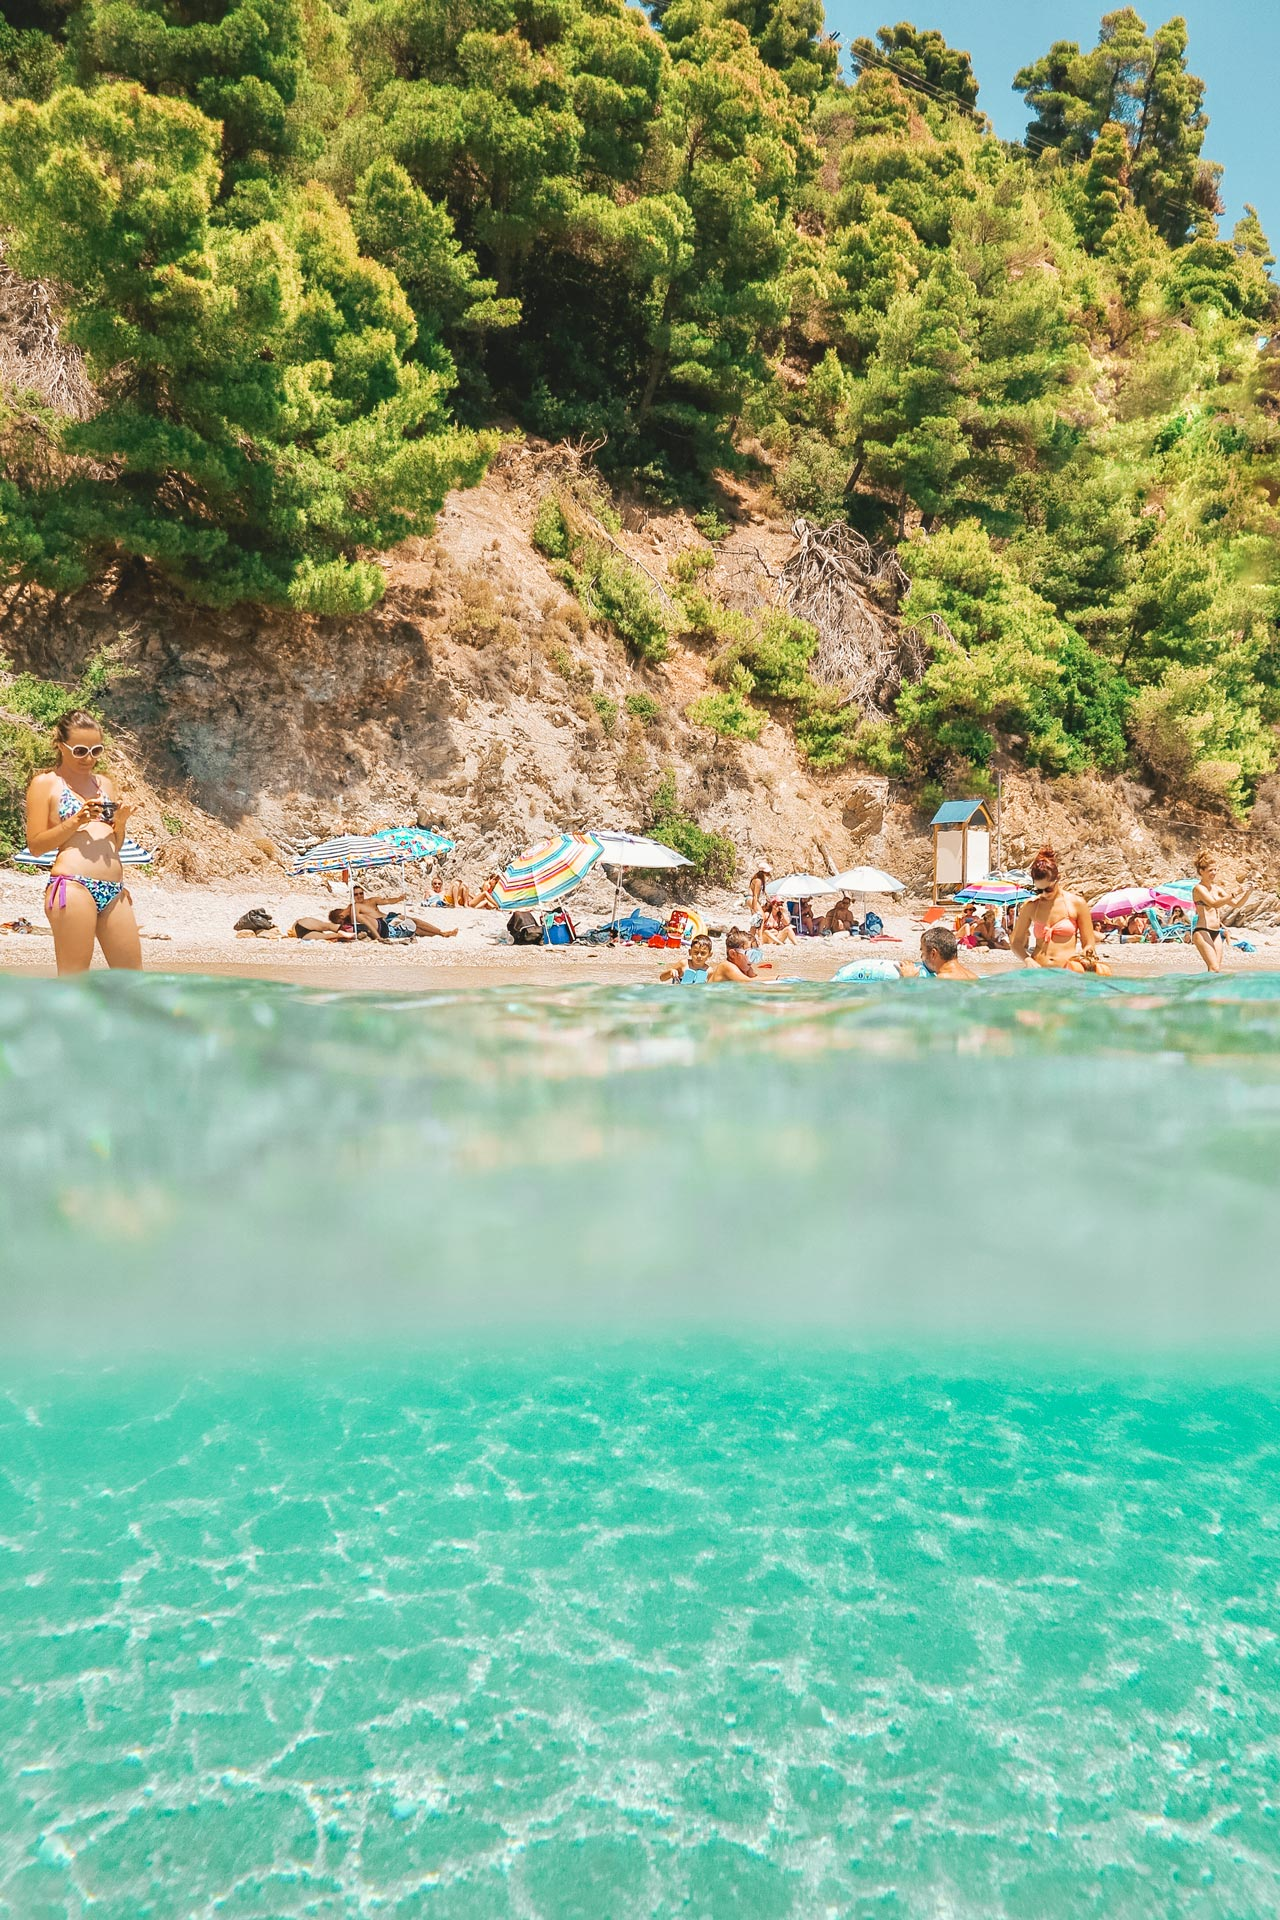 If your holiday priorities are relaxation and natural beauty, then make your way to Skopelos